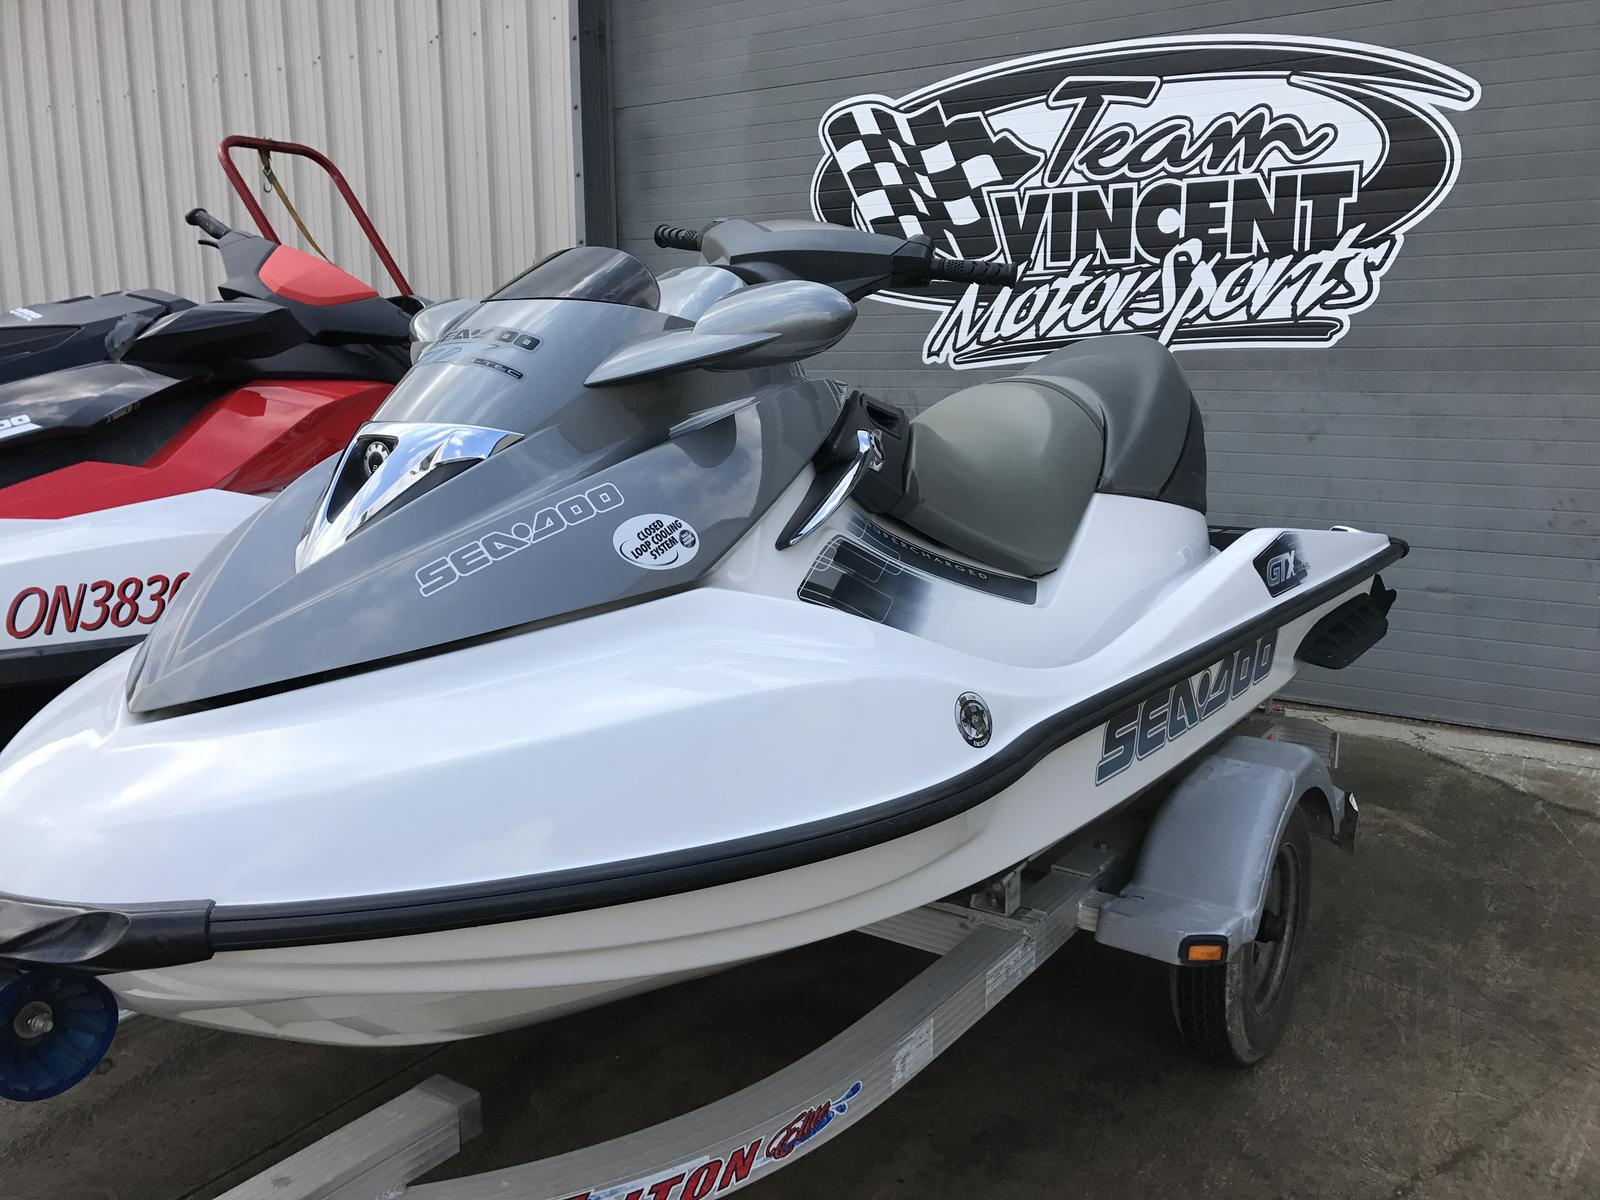 For Sale: 2006 Sea Doo Pwc Used Gtx 185 S/c ft<br/>Team Vincent Motorsports Inc